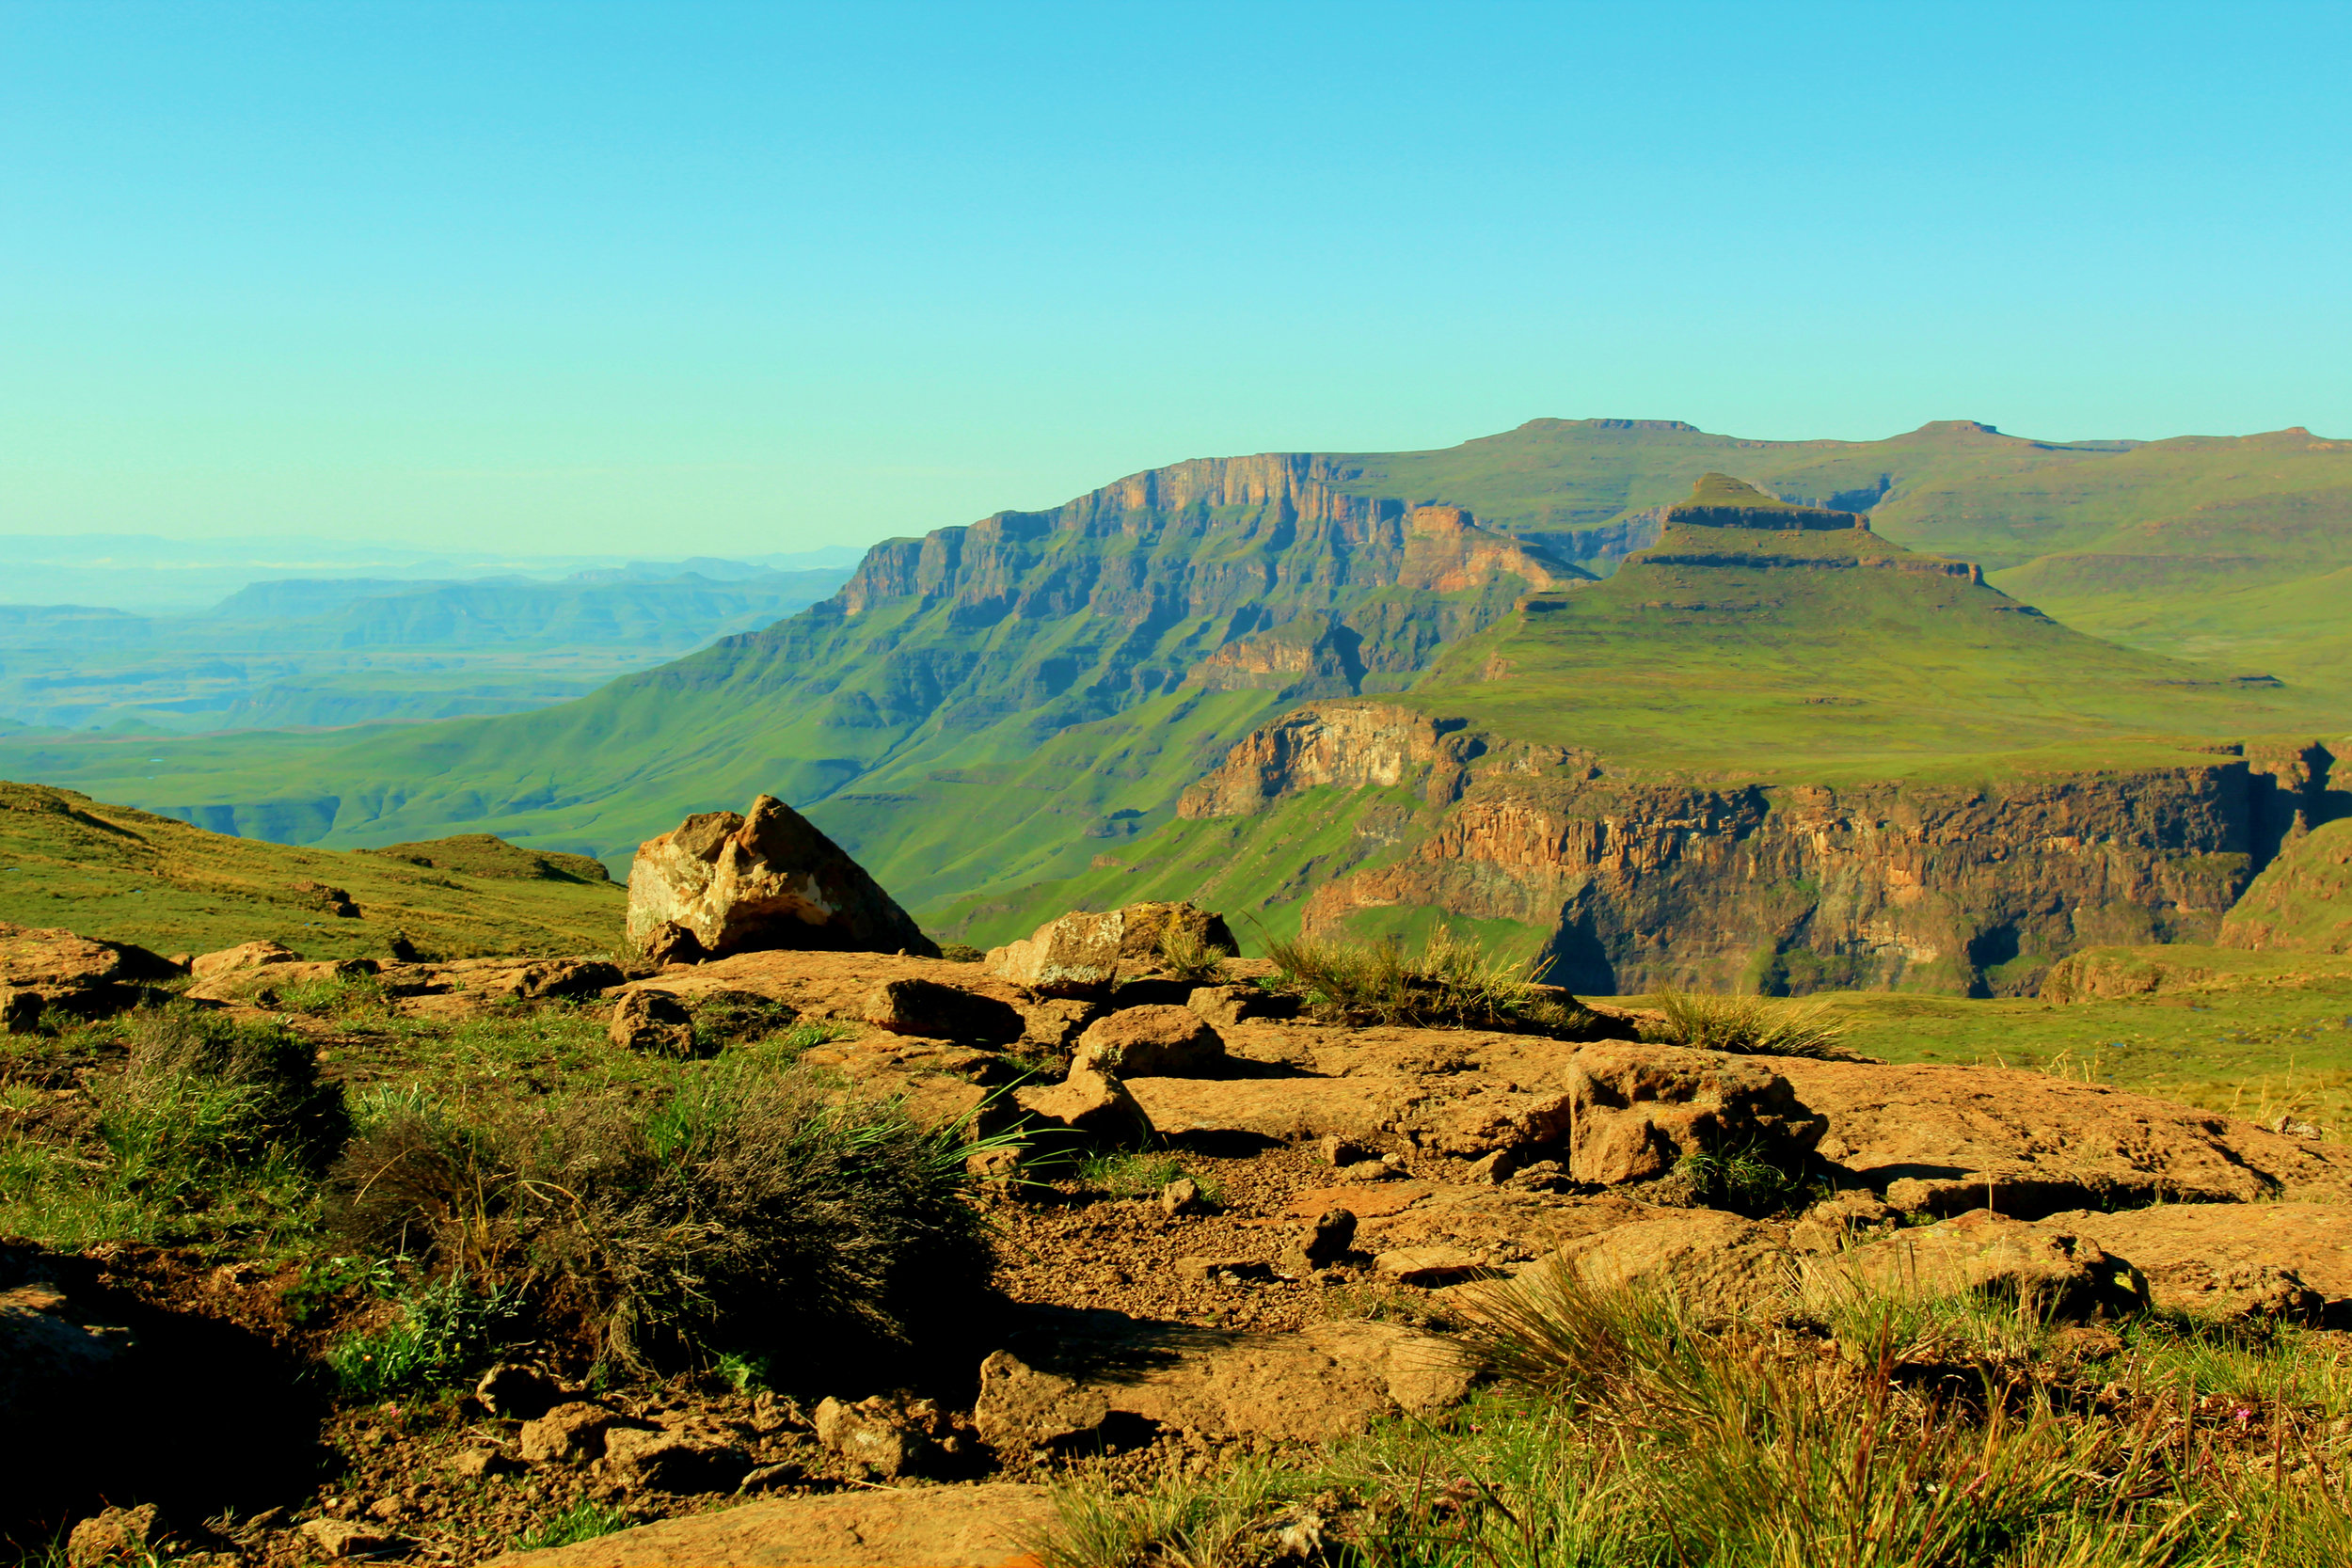 Looking into Lesotho from the top of Giant's Castle Pass